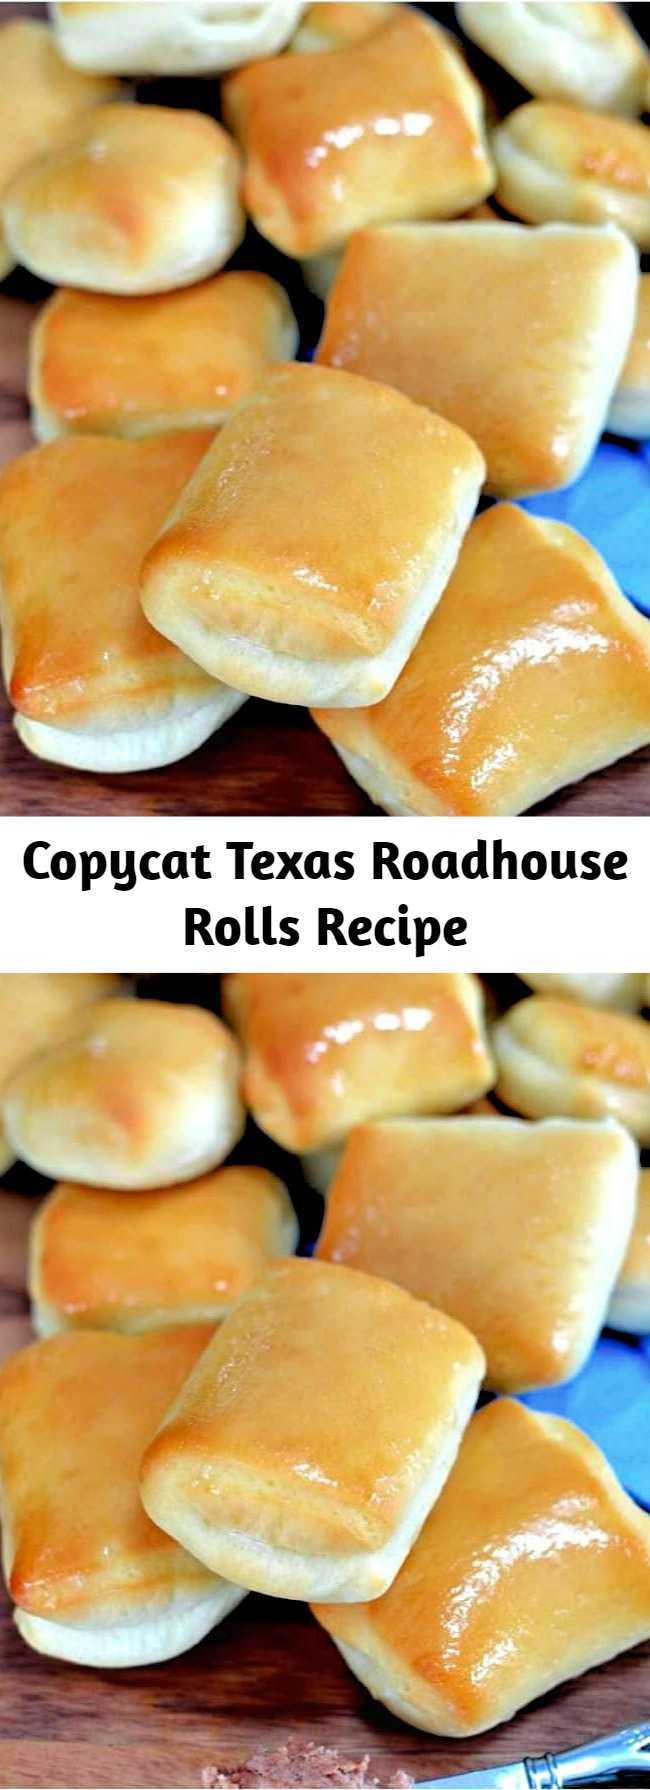 Copycat Texas Roadhouse Rolls Recipe